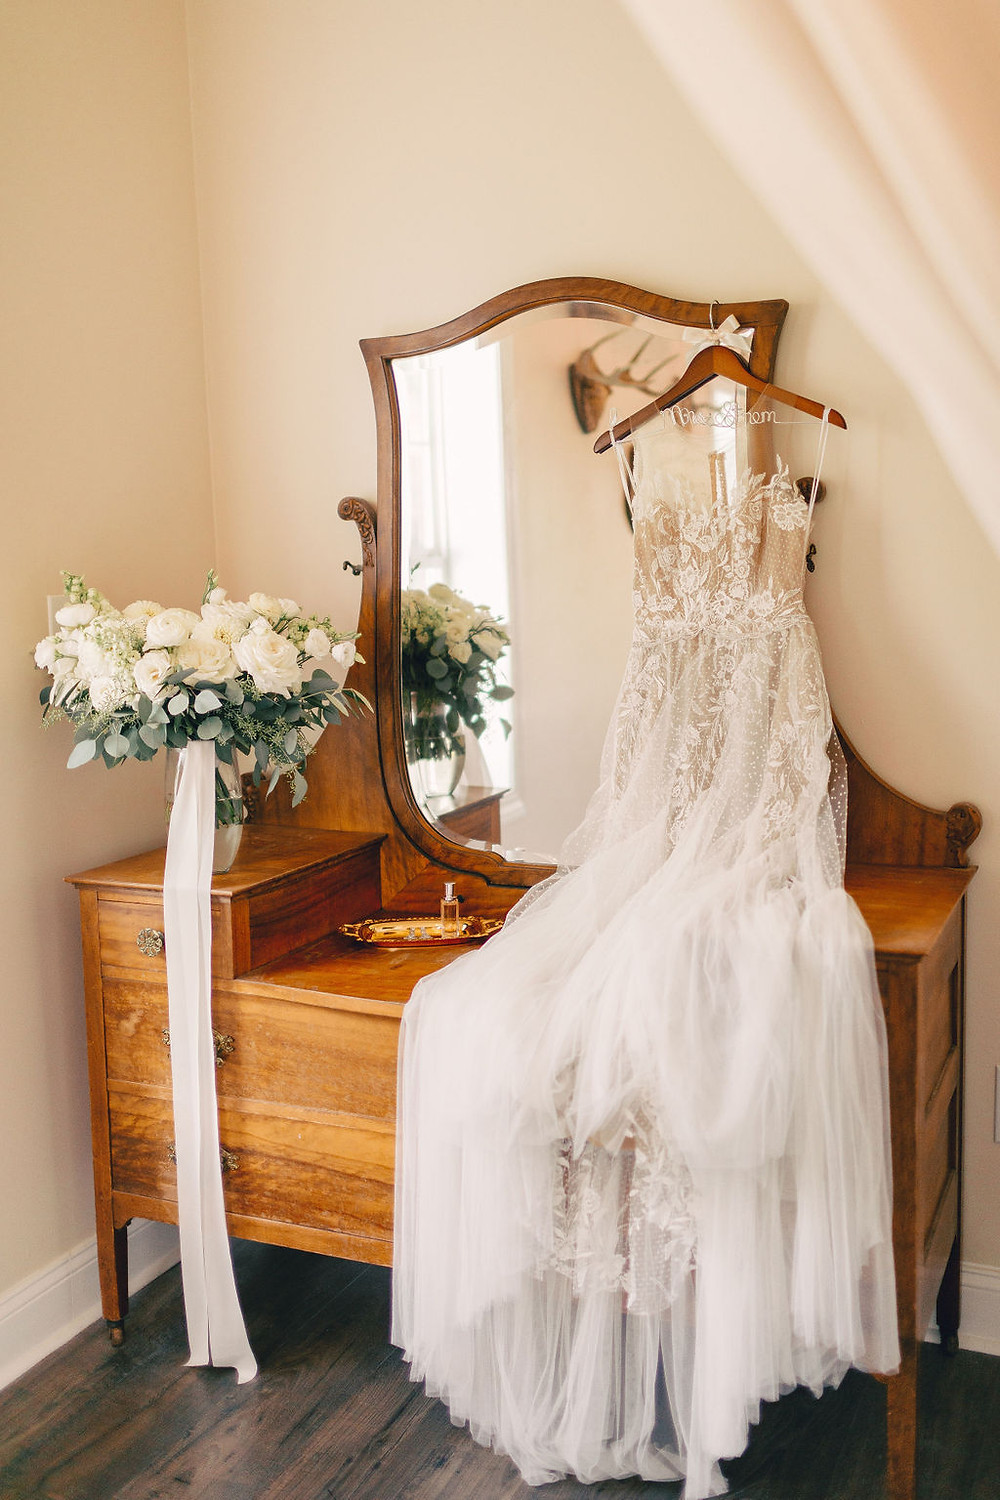 BHLDN Wedding Dress in Bridal Suite